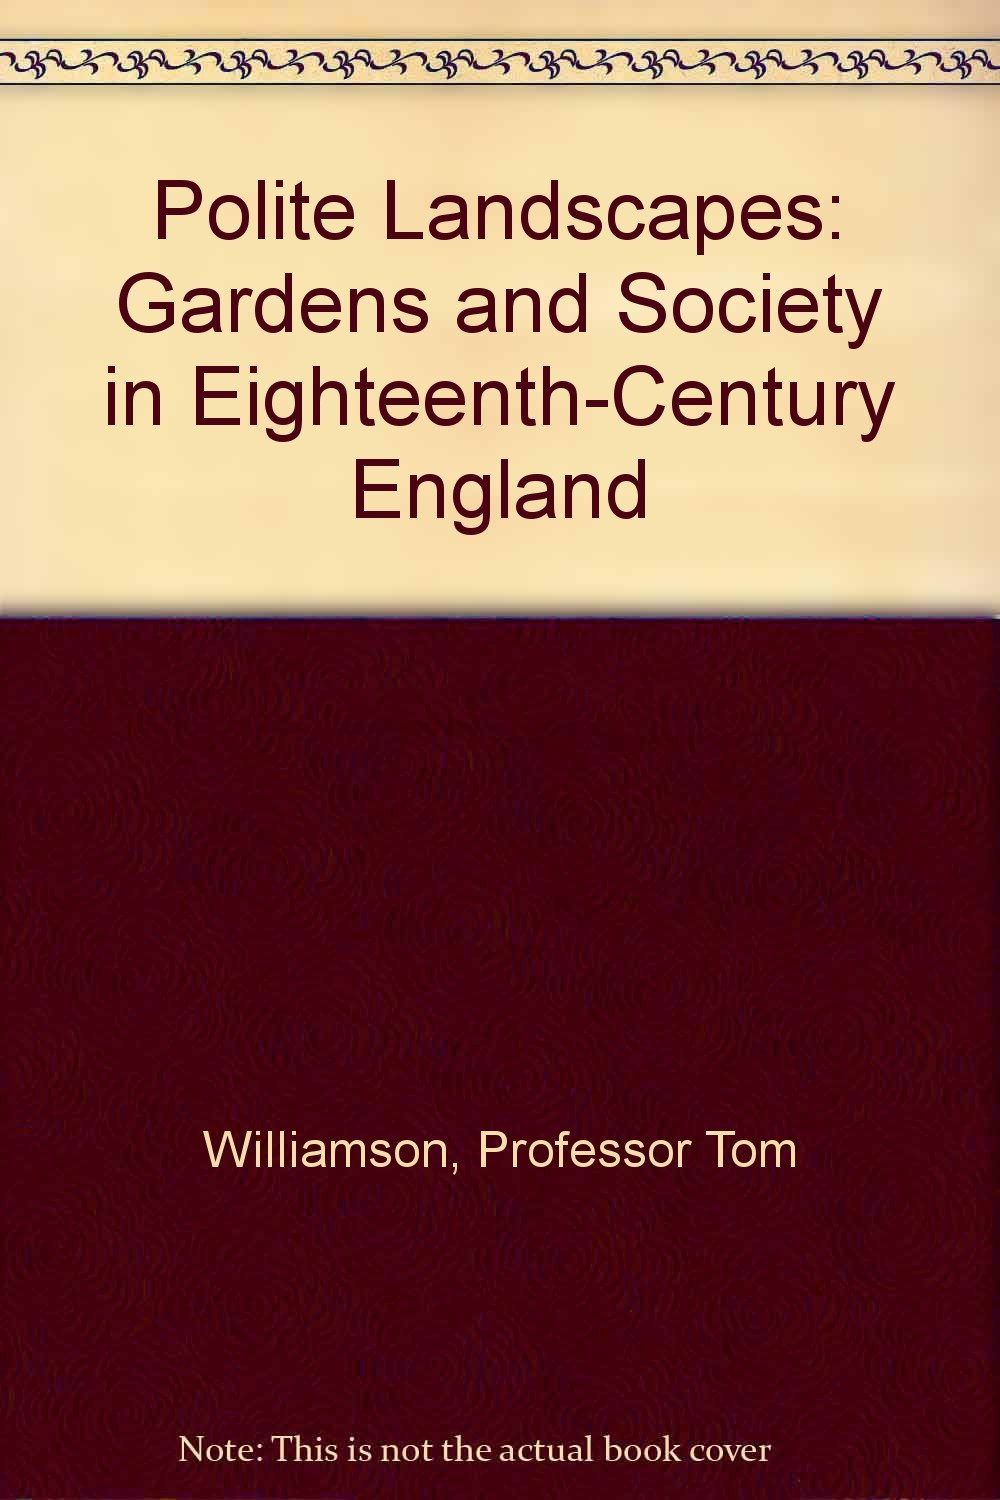 Polite Landscapes: Gardens and Society in Eighteenth-Century England